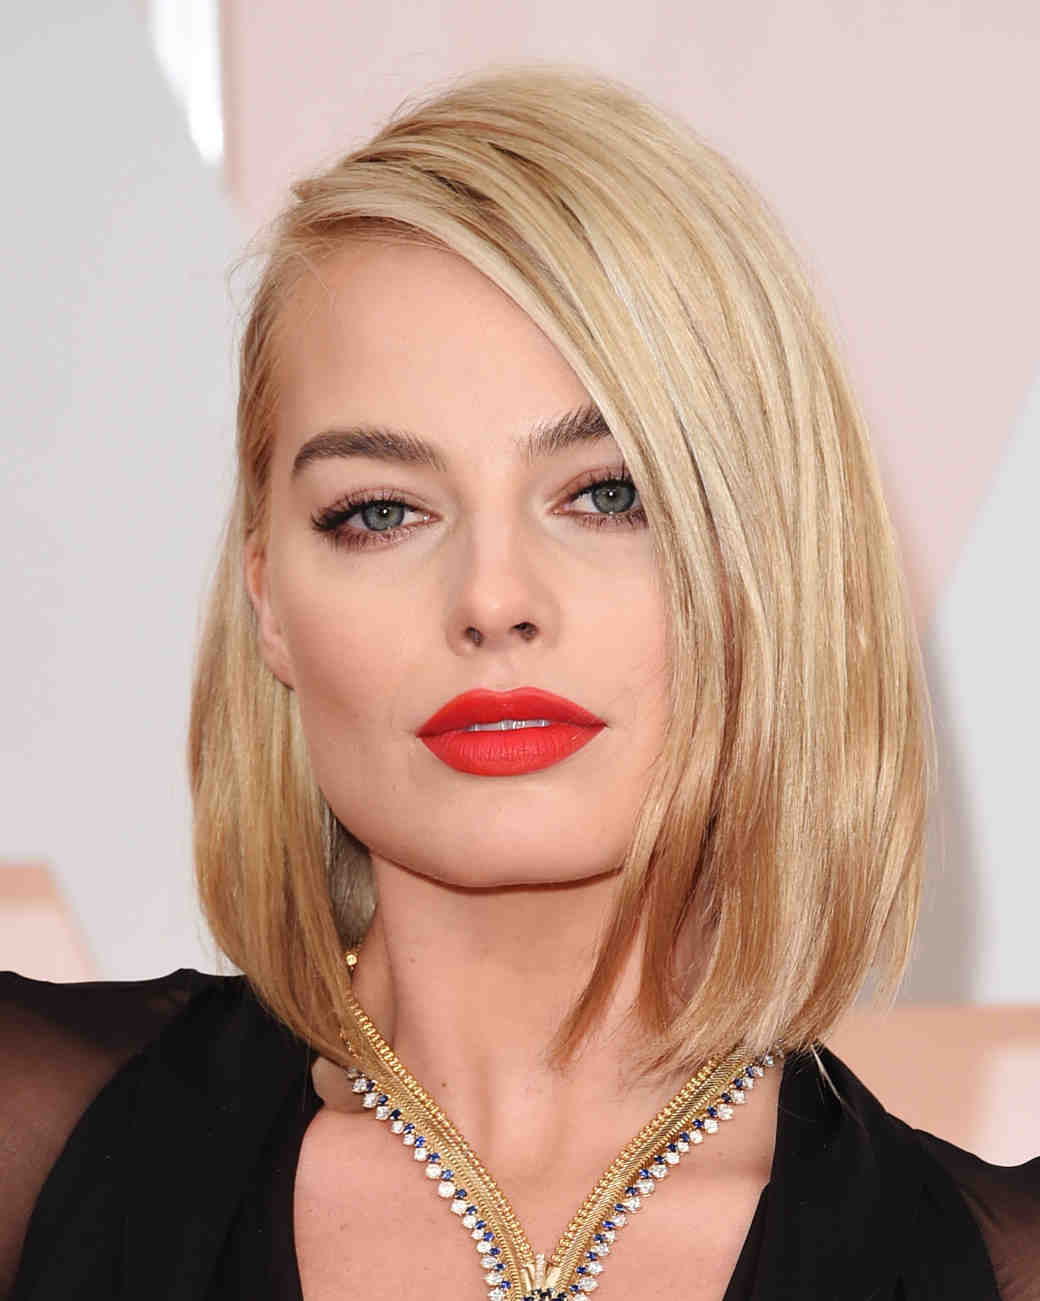 celebrity-wedding-makeup-margotrobbie-0915.jpg